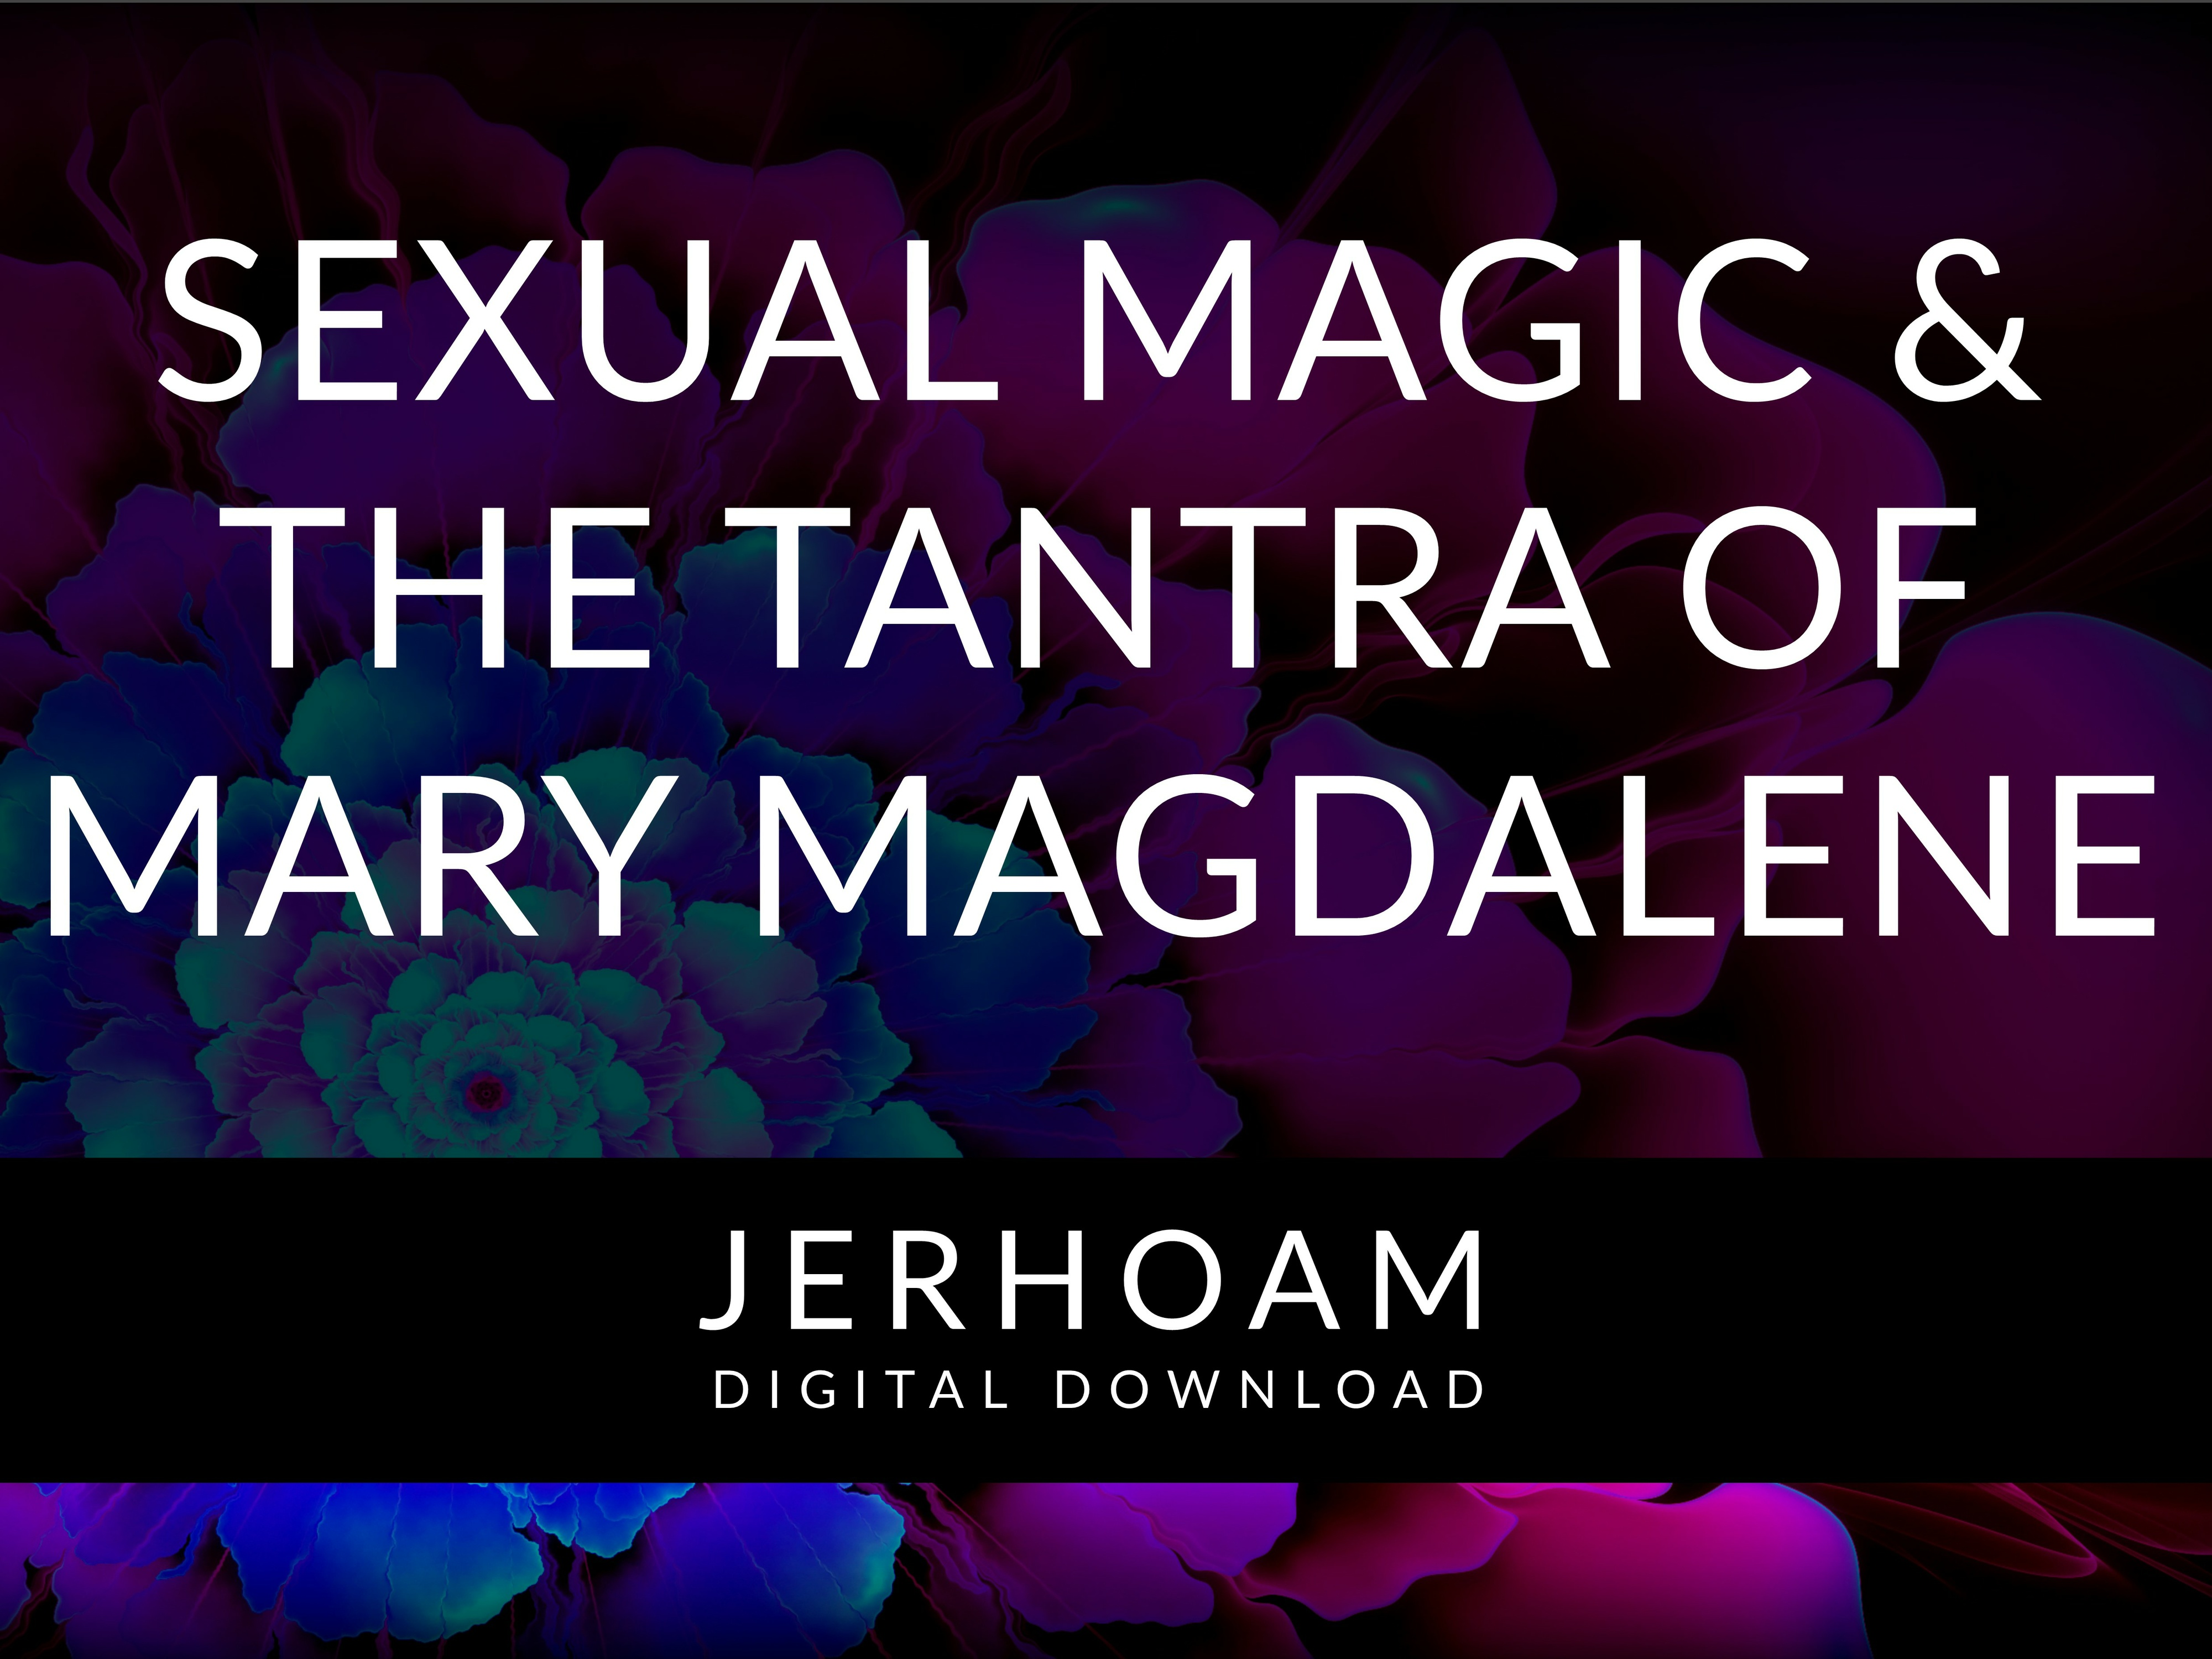 Sexual Magic and the Tantra of Mary Magdalene